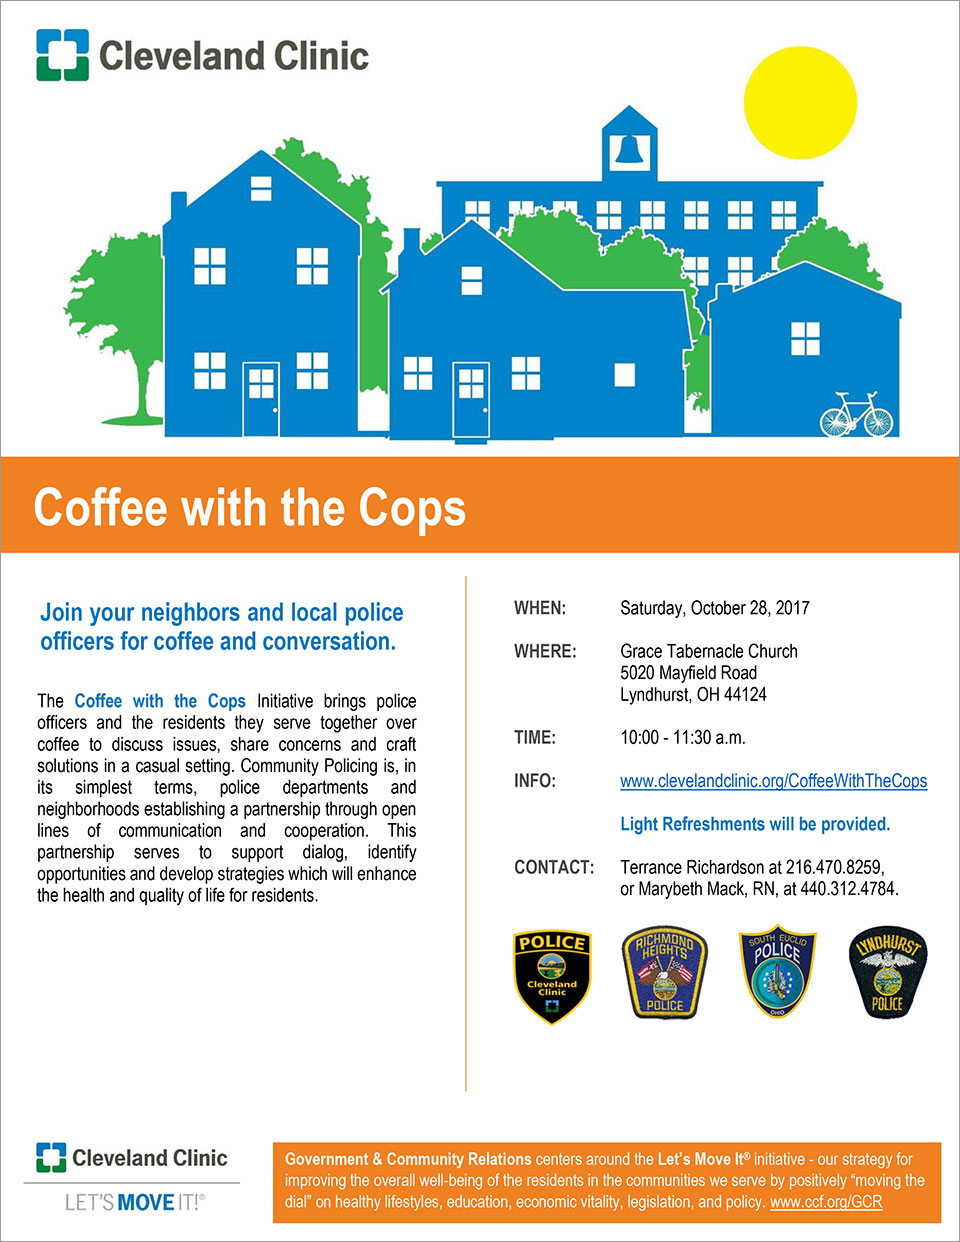 Cleveland Clinic Presents: Coffee with the Cops - October 28th 2017 - City of Lyndhurst, Ohio